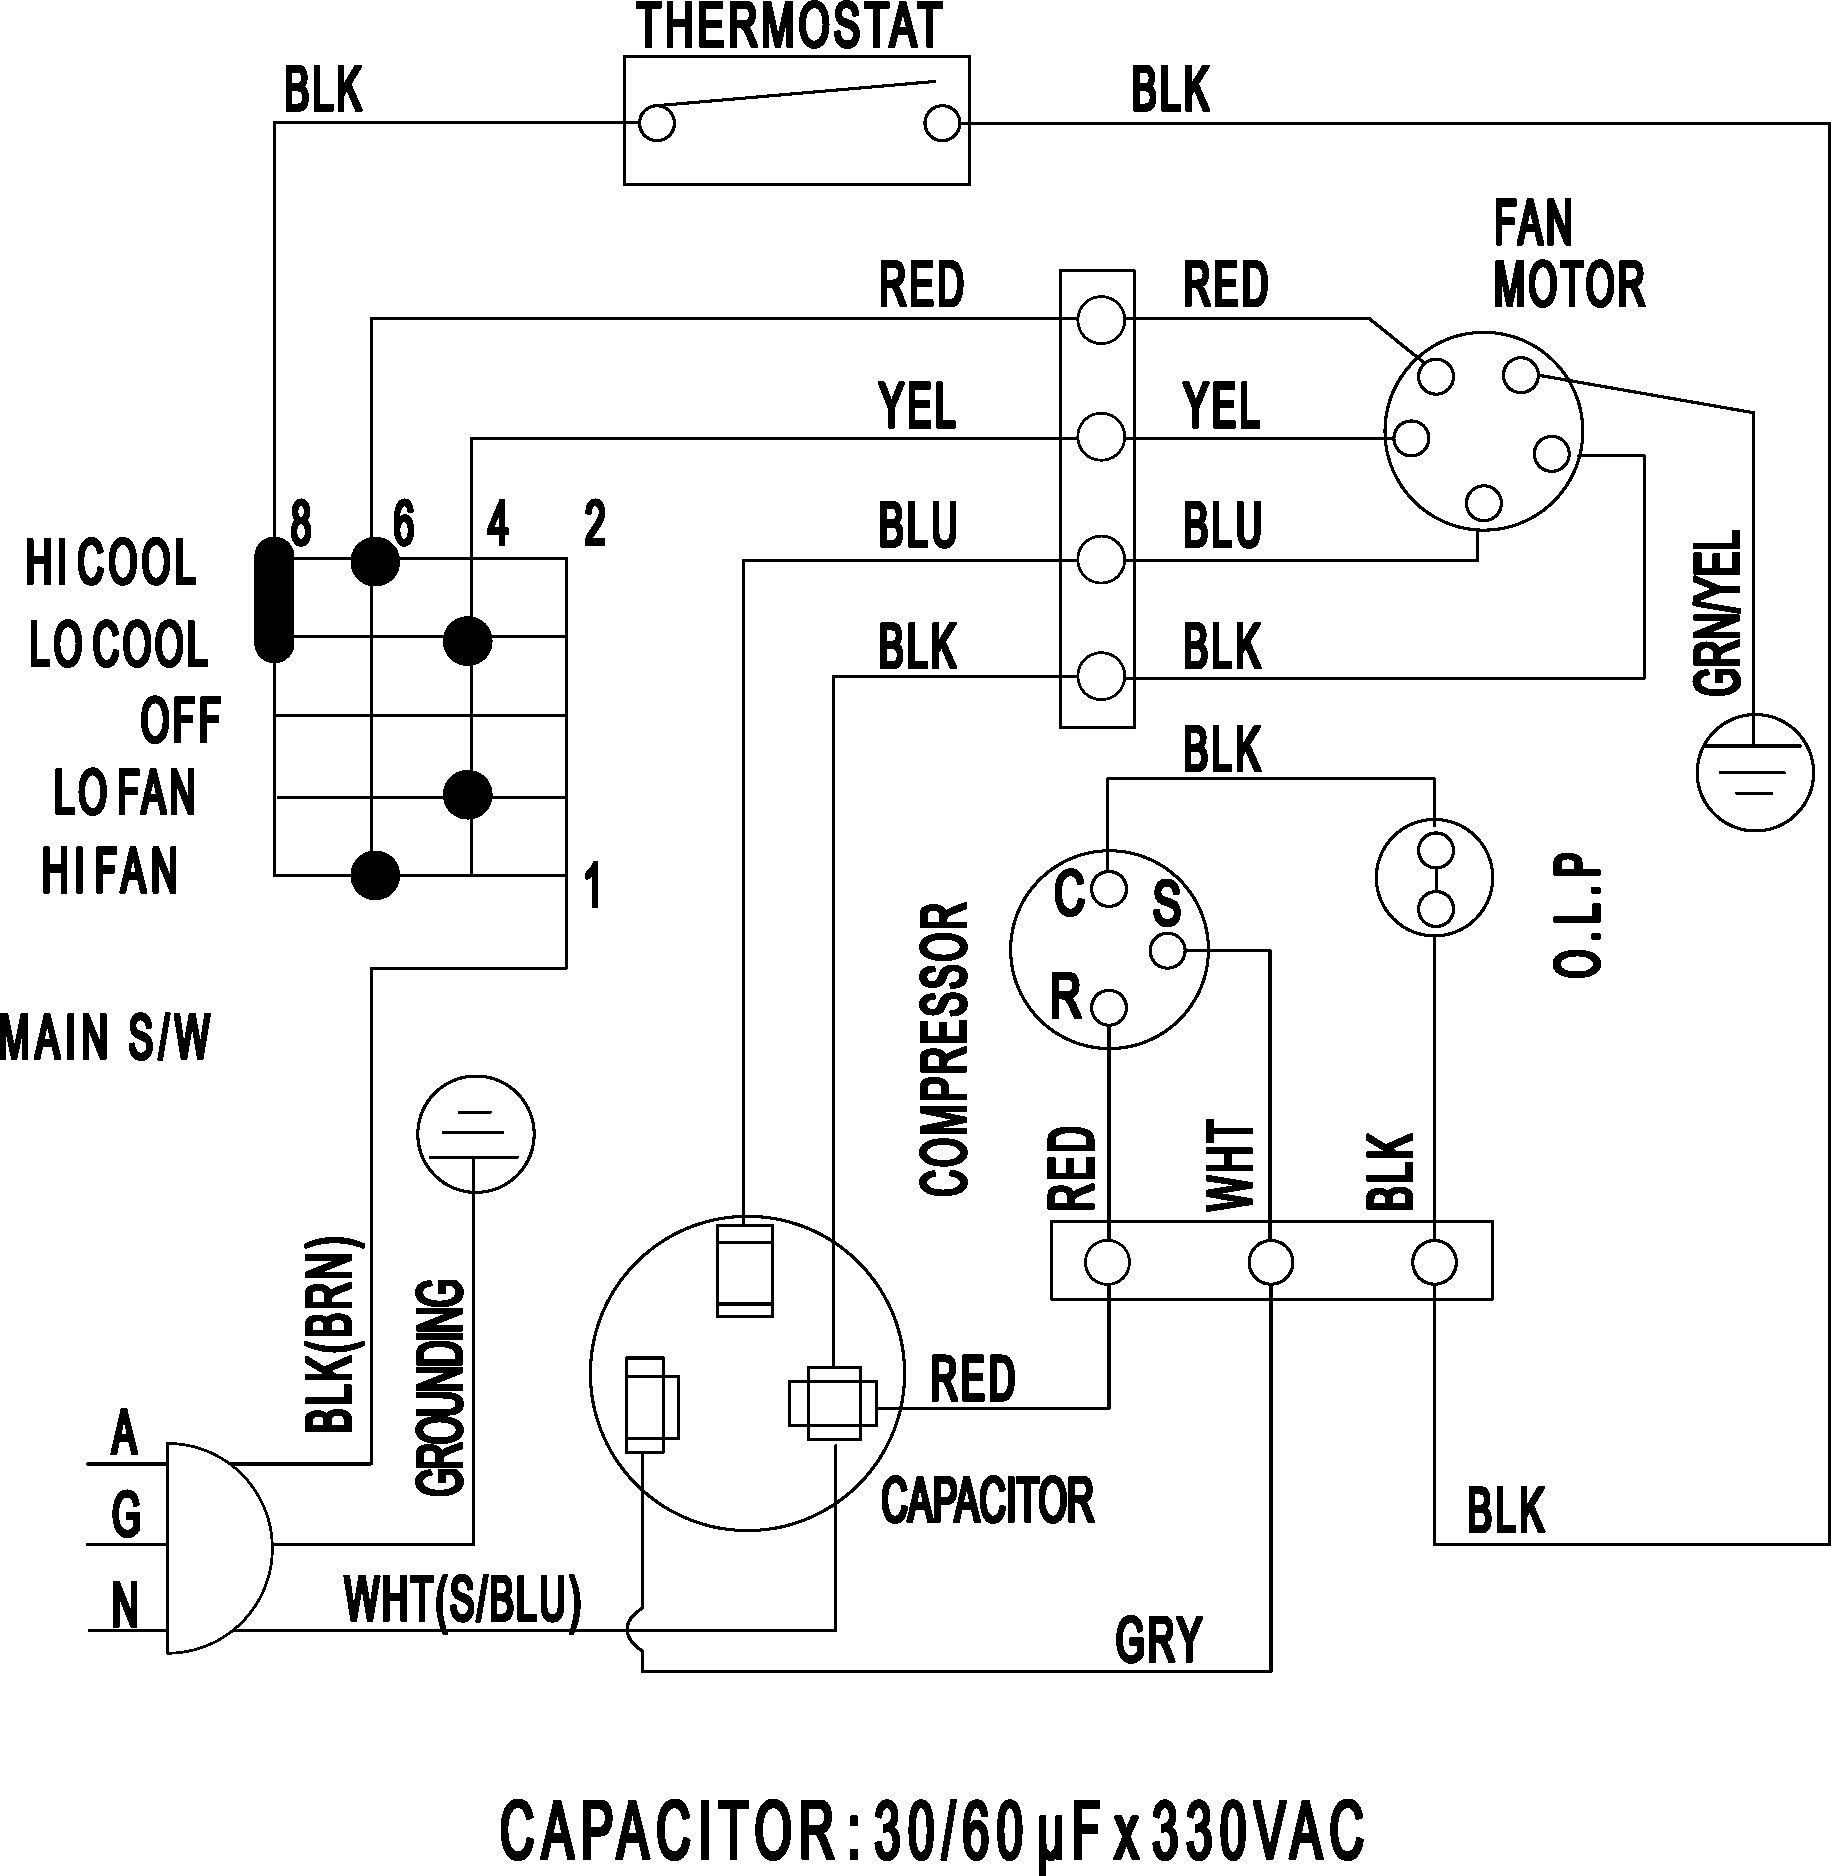 Uncategorized What Is A Split System Hvac Incredible Wiring Diagram Ac Split Copy Carrier Air For